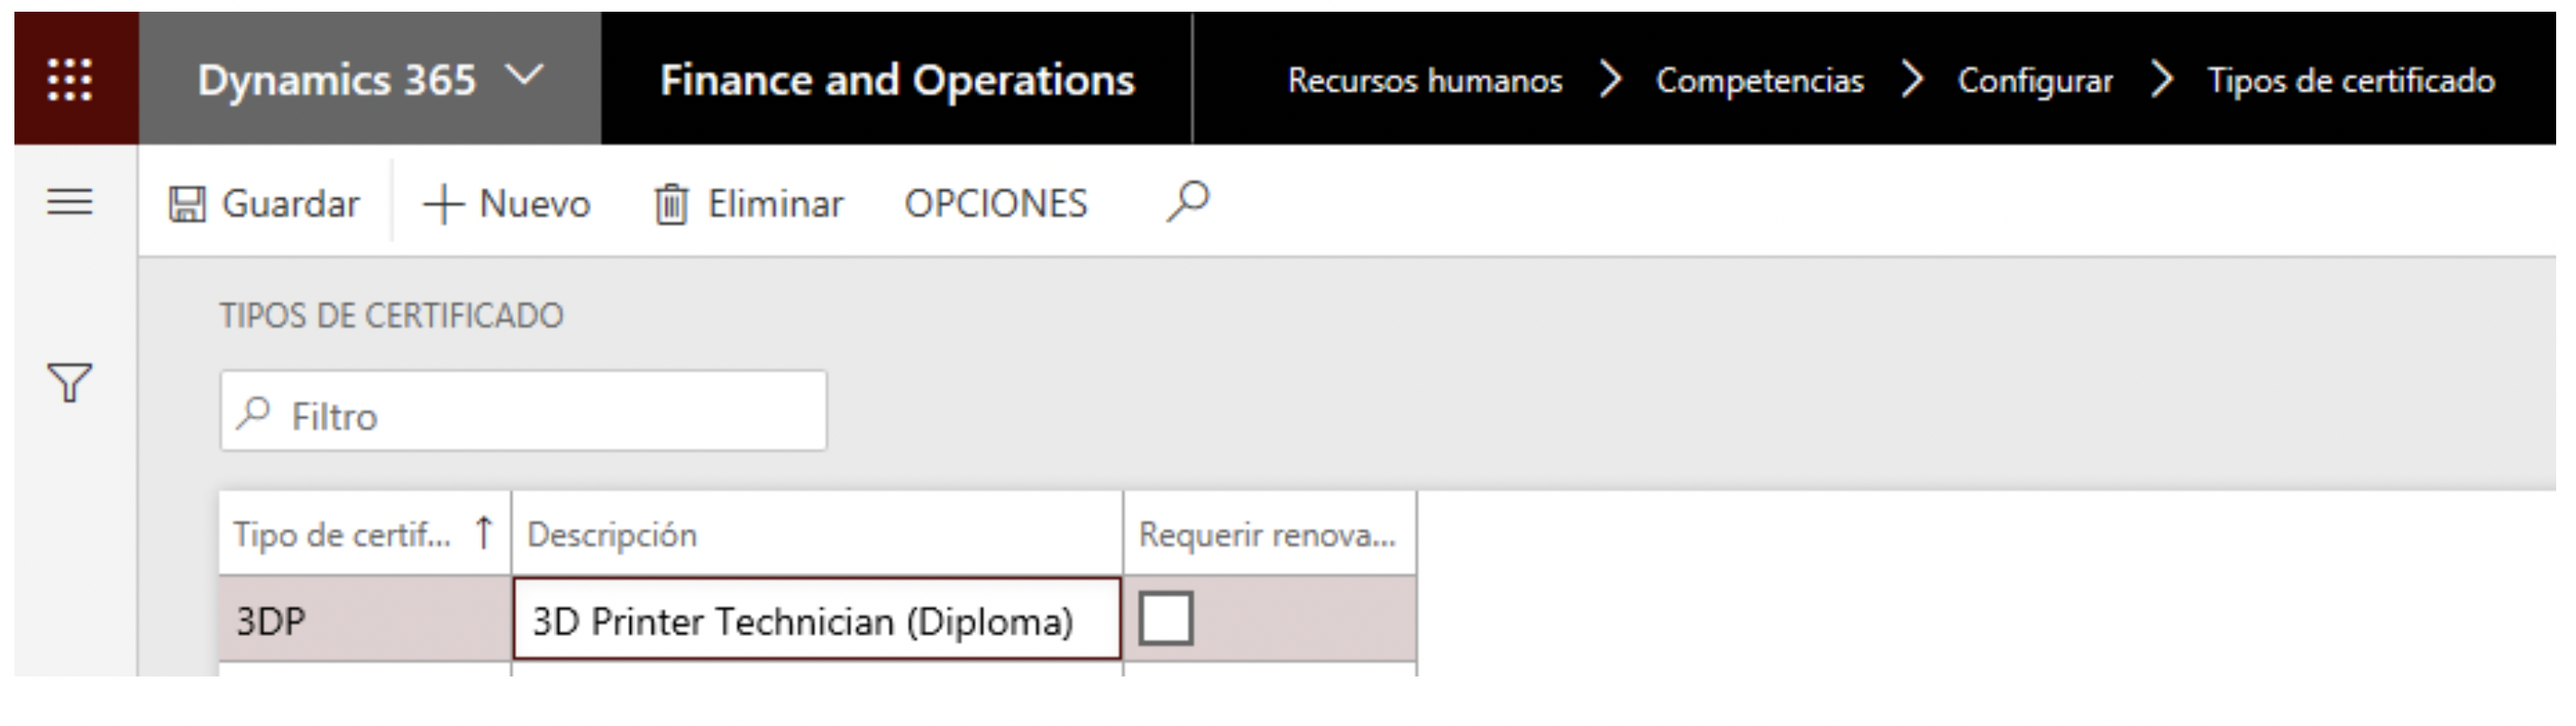 ERD - Dynamics365 Finance Operations - Gestión Activos ERP - 2.1